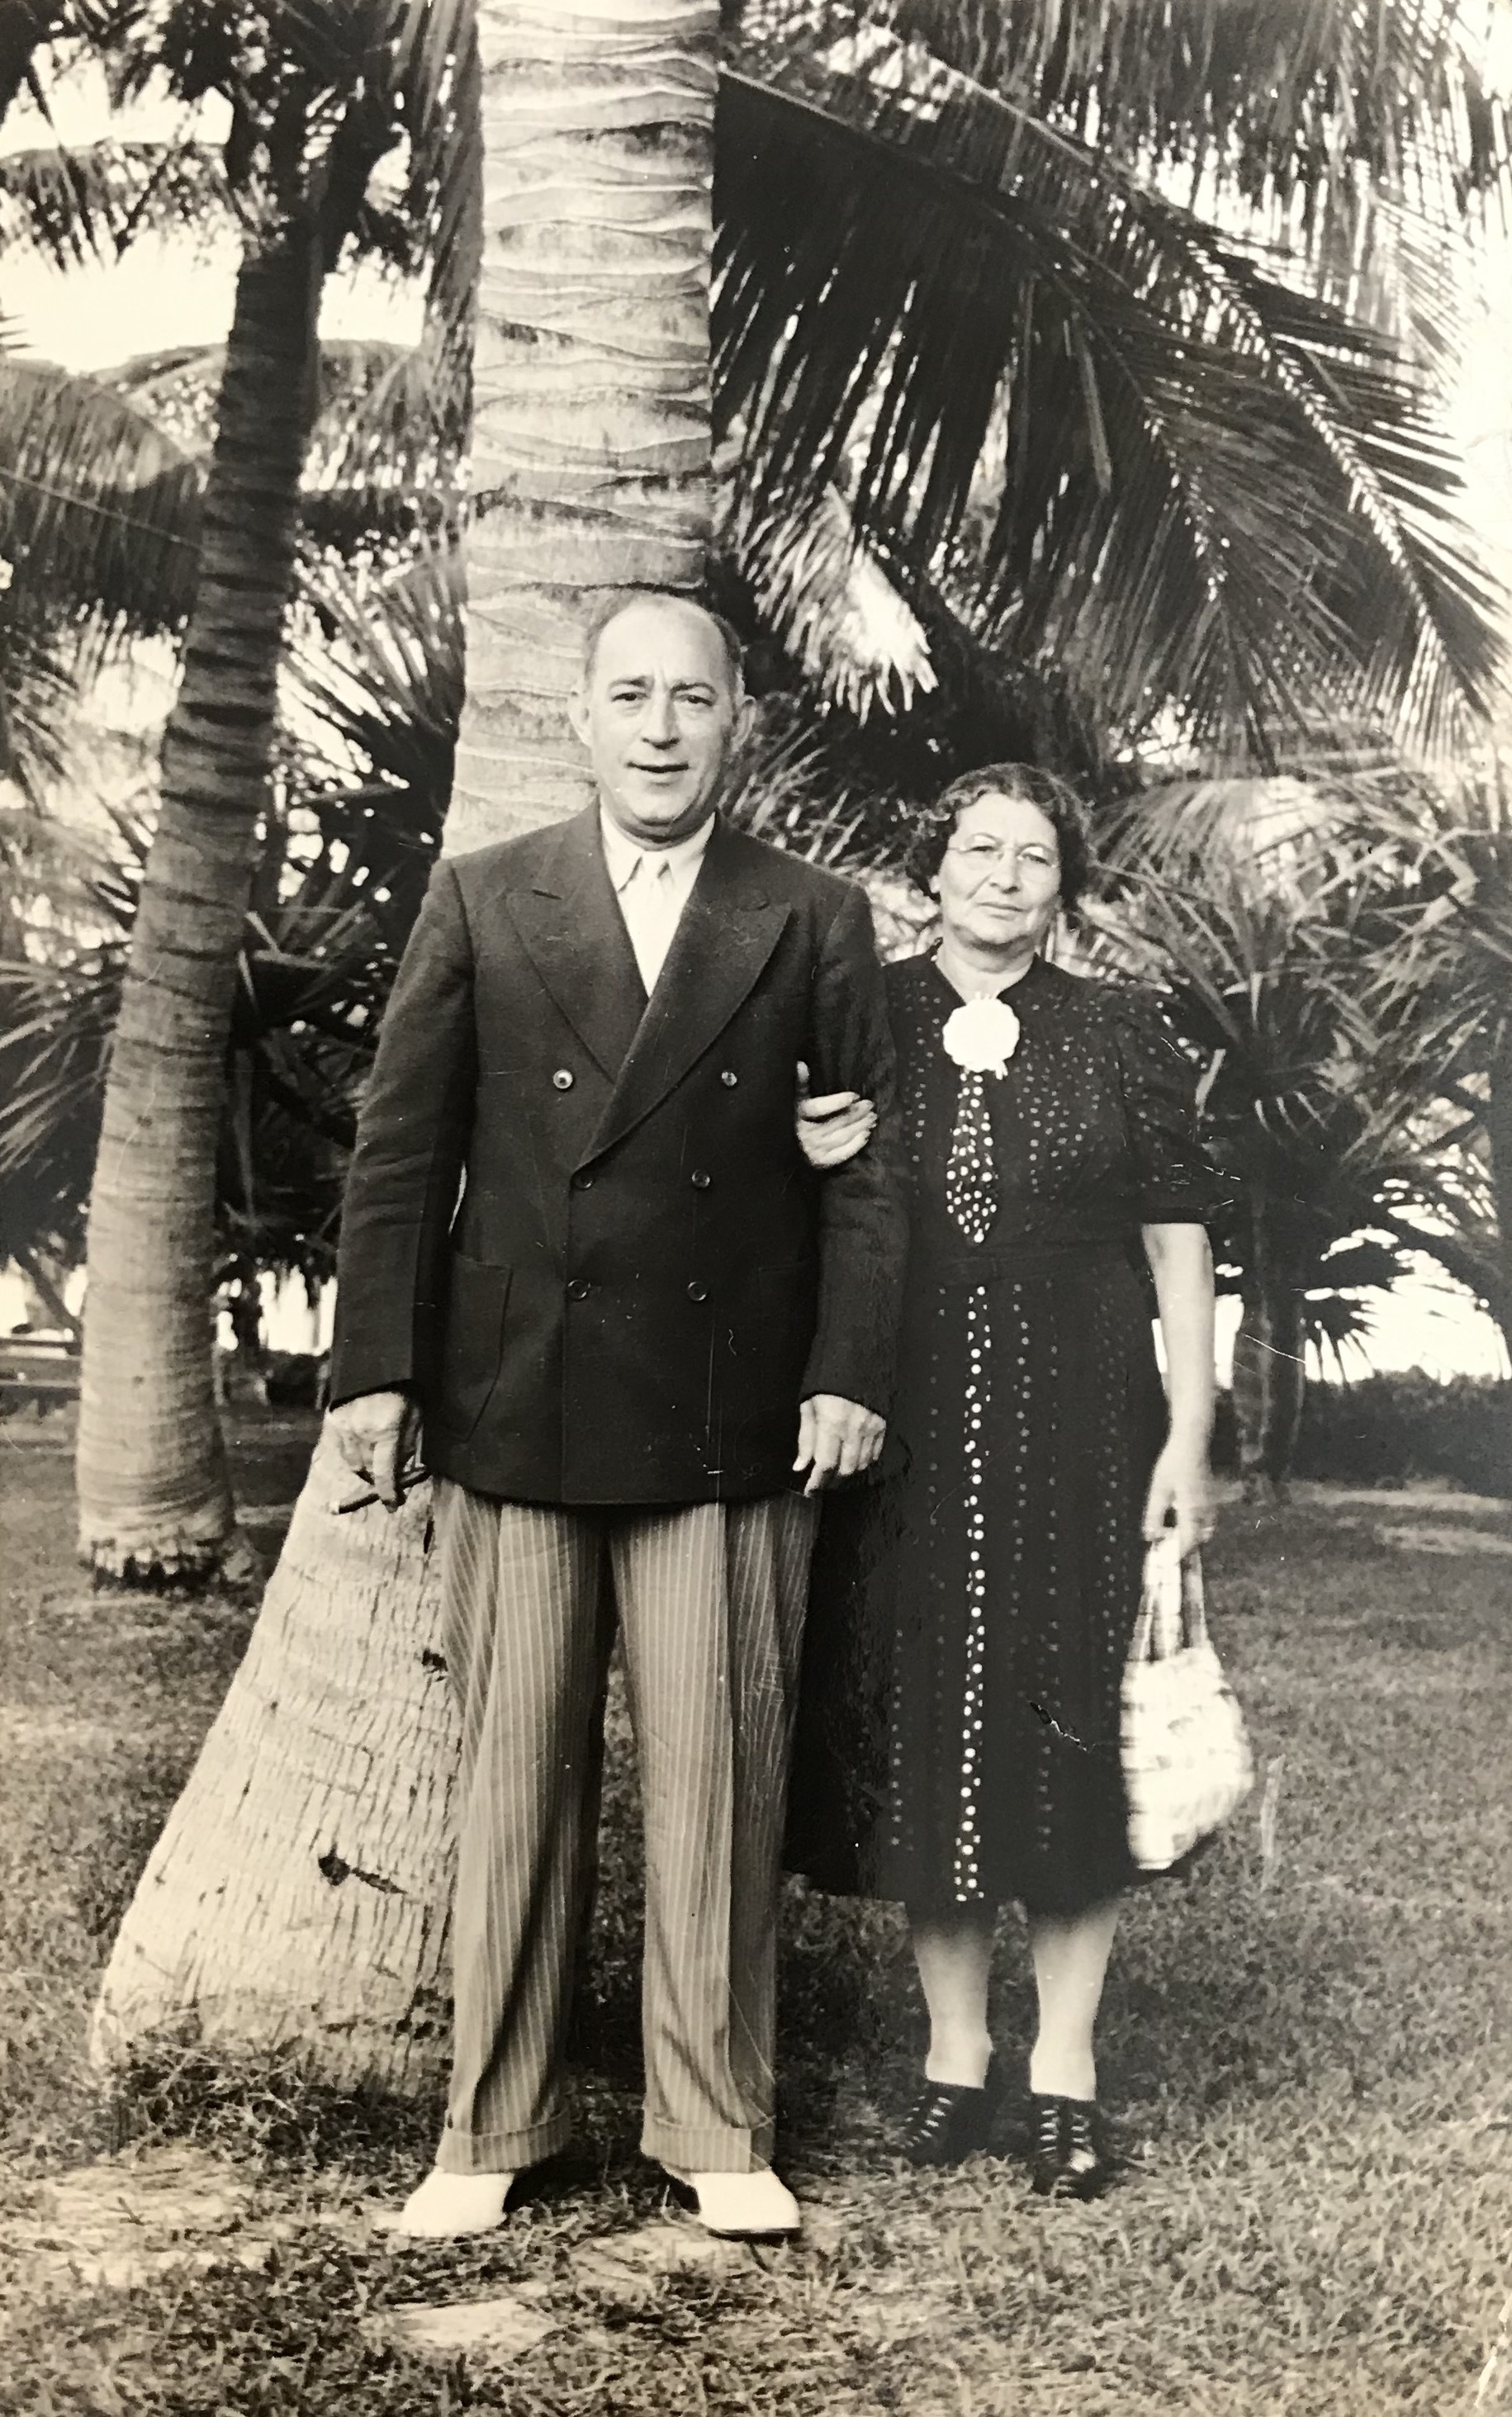 Nettie and Phillip Silverman, Miami Beach, early 1940's.